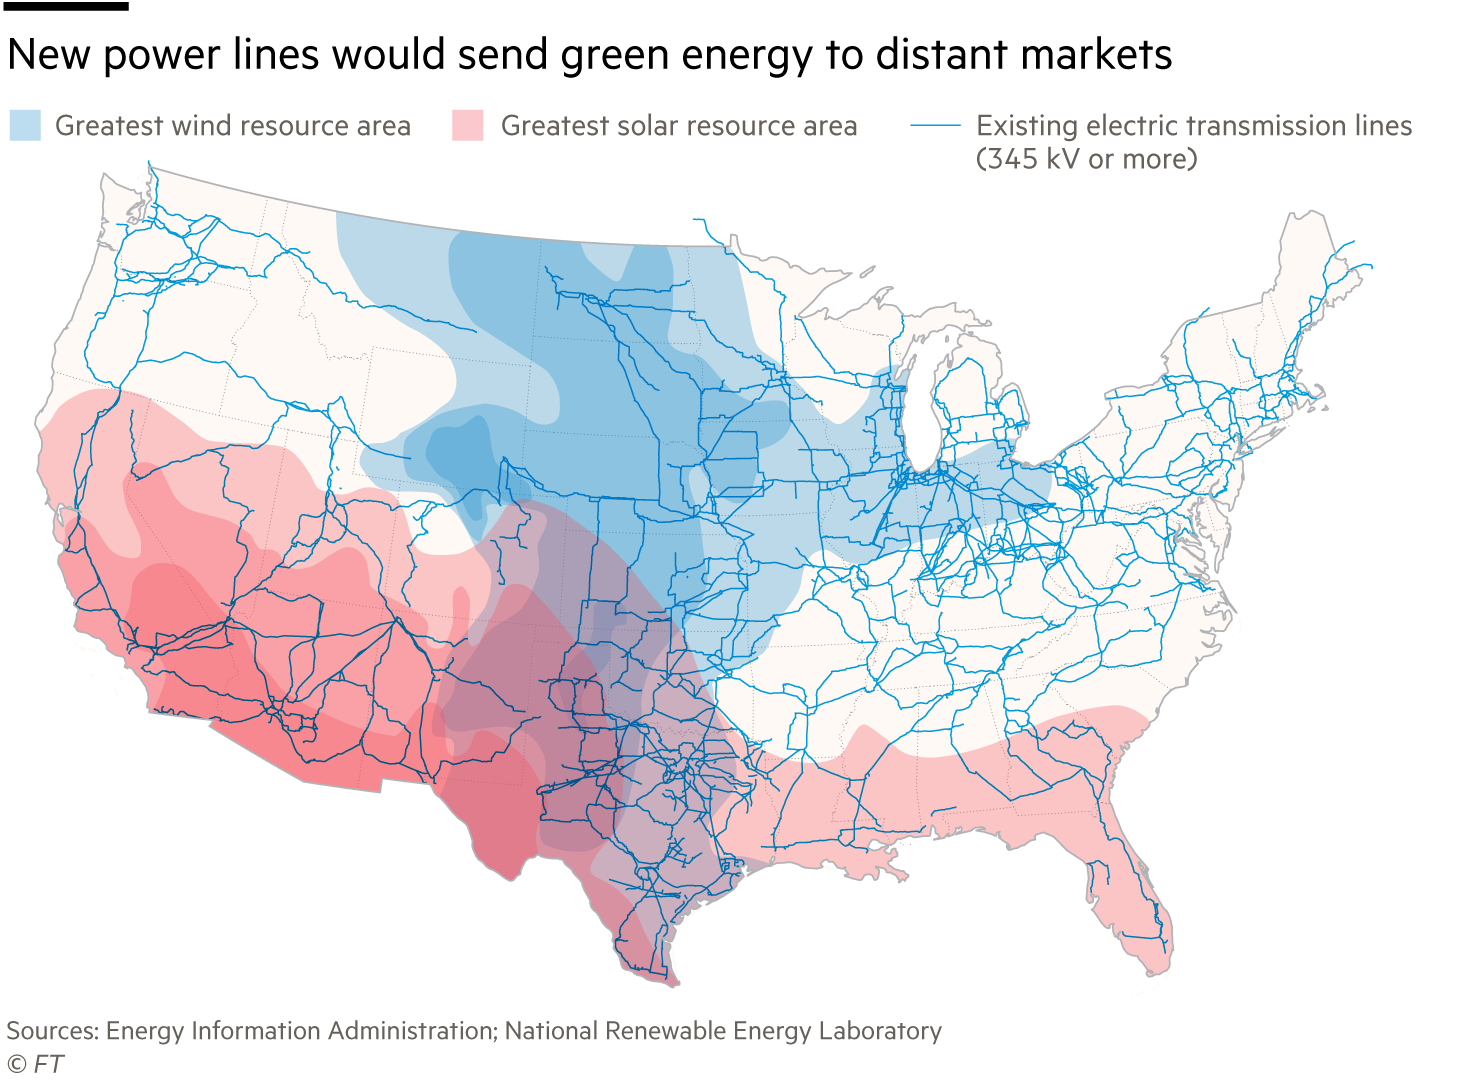 New power lines would send green energy to distant markets, greatest wind resource area, greatest solar resource area, existing electric transmission lines (345 kV or more)